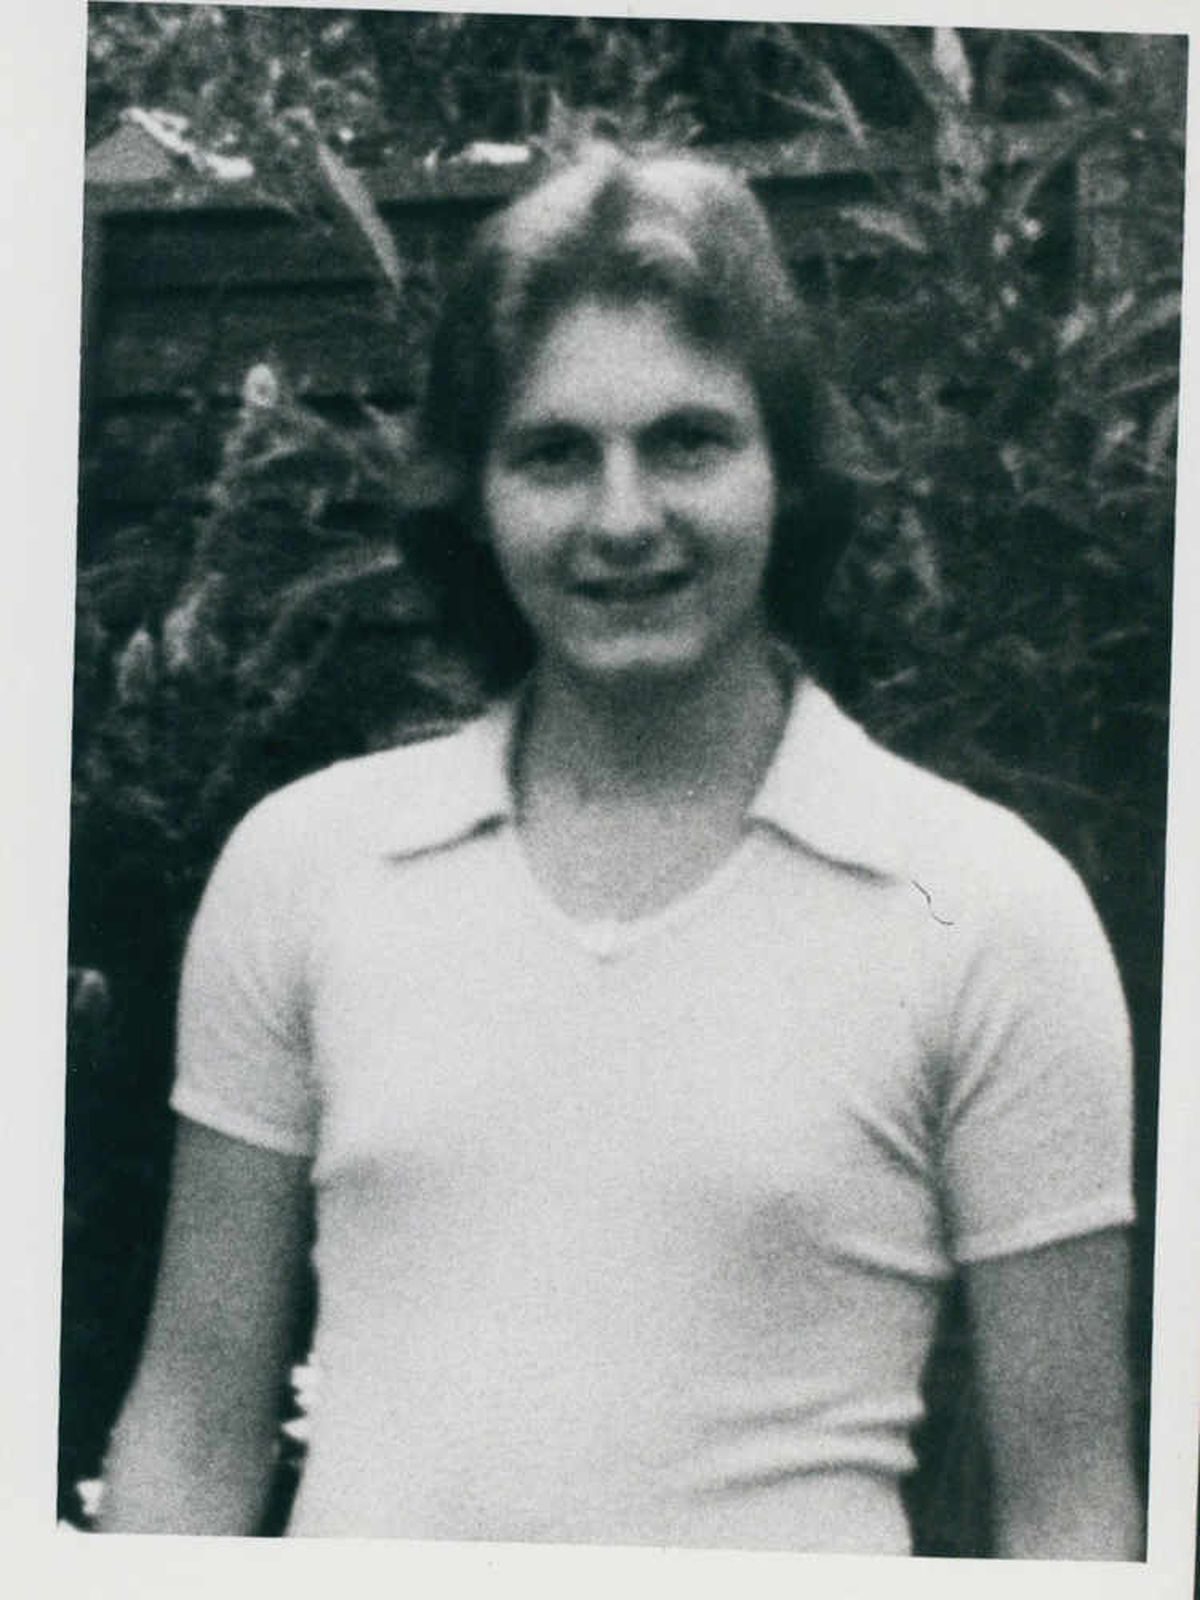 Jill's brother Philip, who died aged just 20